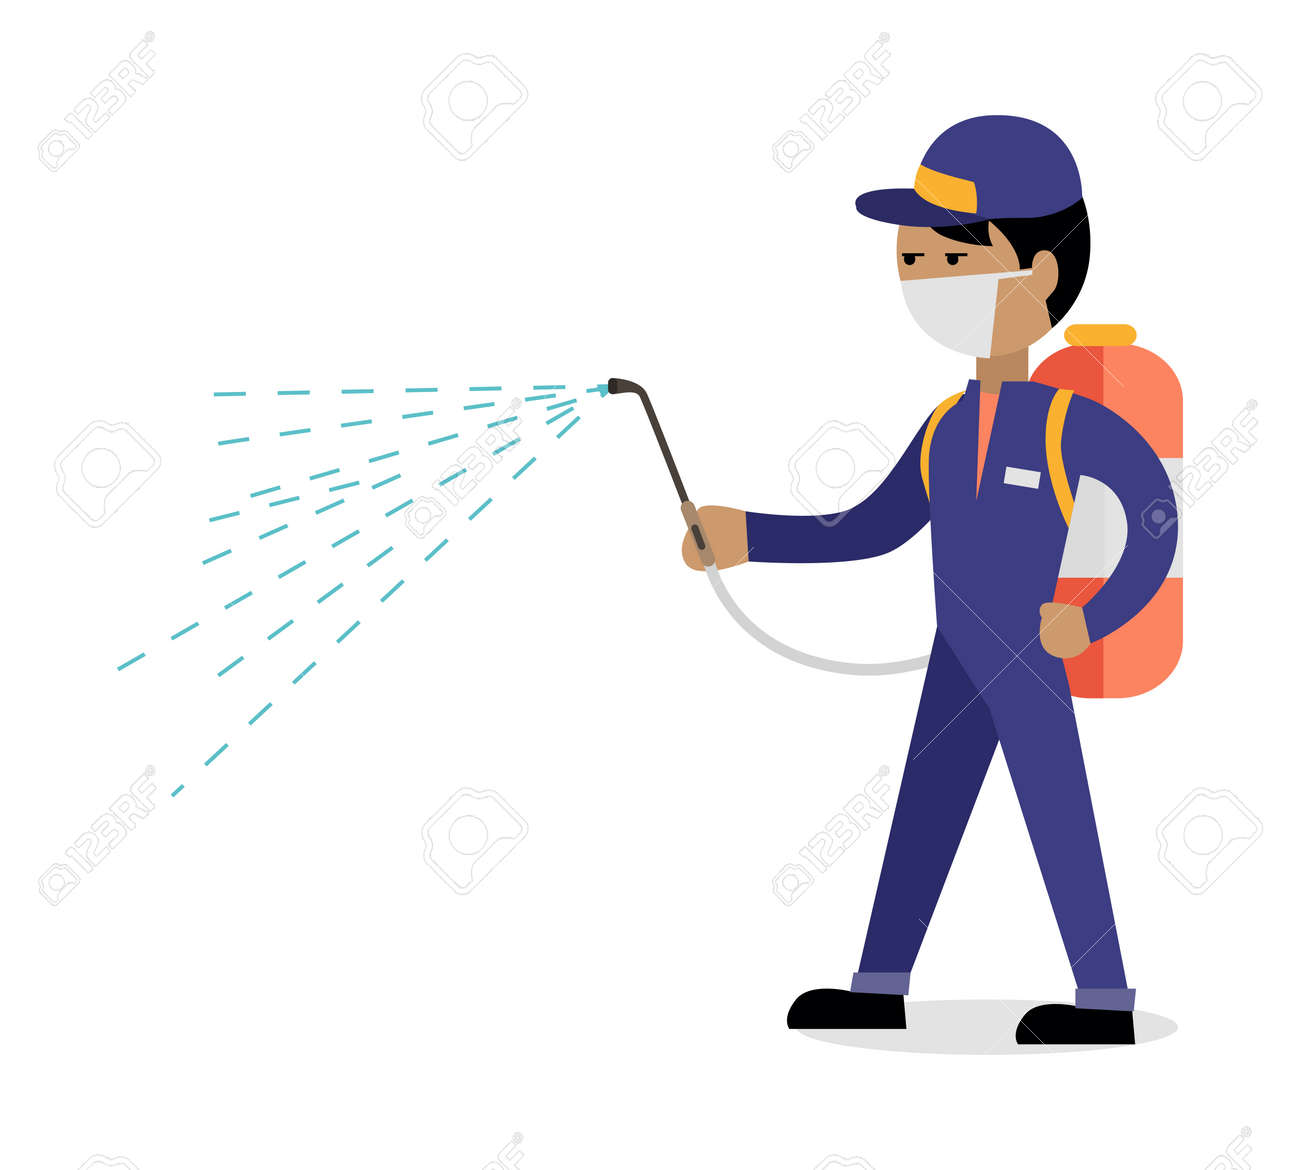 Pest control concept vector in flat style design. Man in uniform with face mask spray pesticides from sprayer on back. Chemical treatment against termites, cockroaches, fleas, agricultural pests. - 64620358